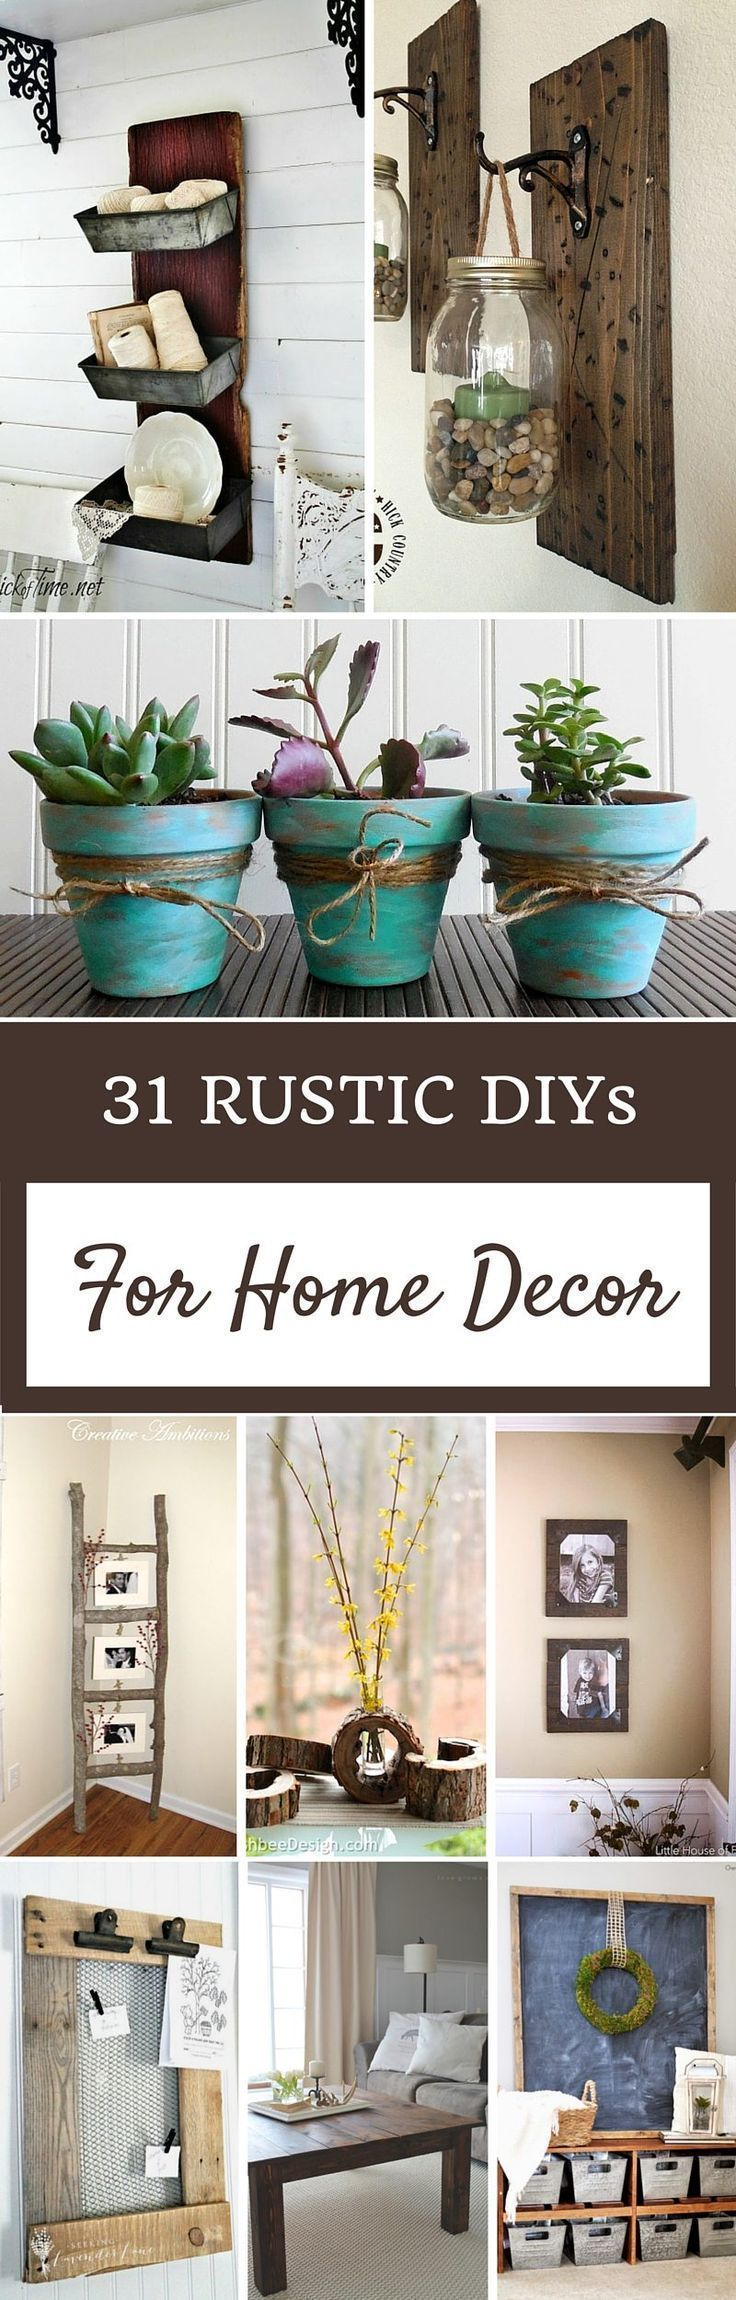 Do It Yourself Home Decorating Ideas: Top 25+ Best Cottage Decorating Ideas On Pinterest